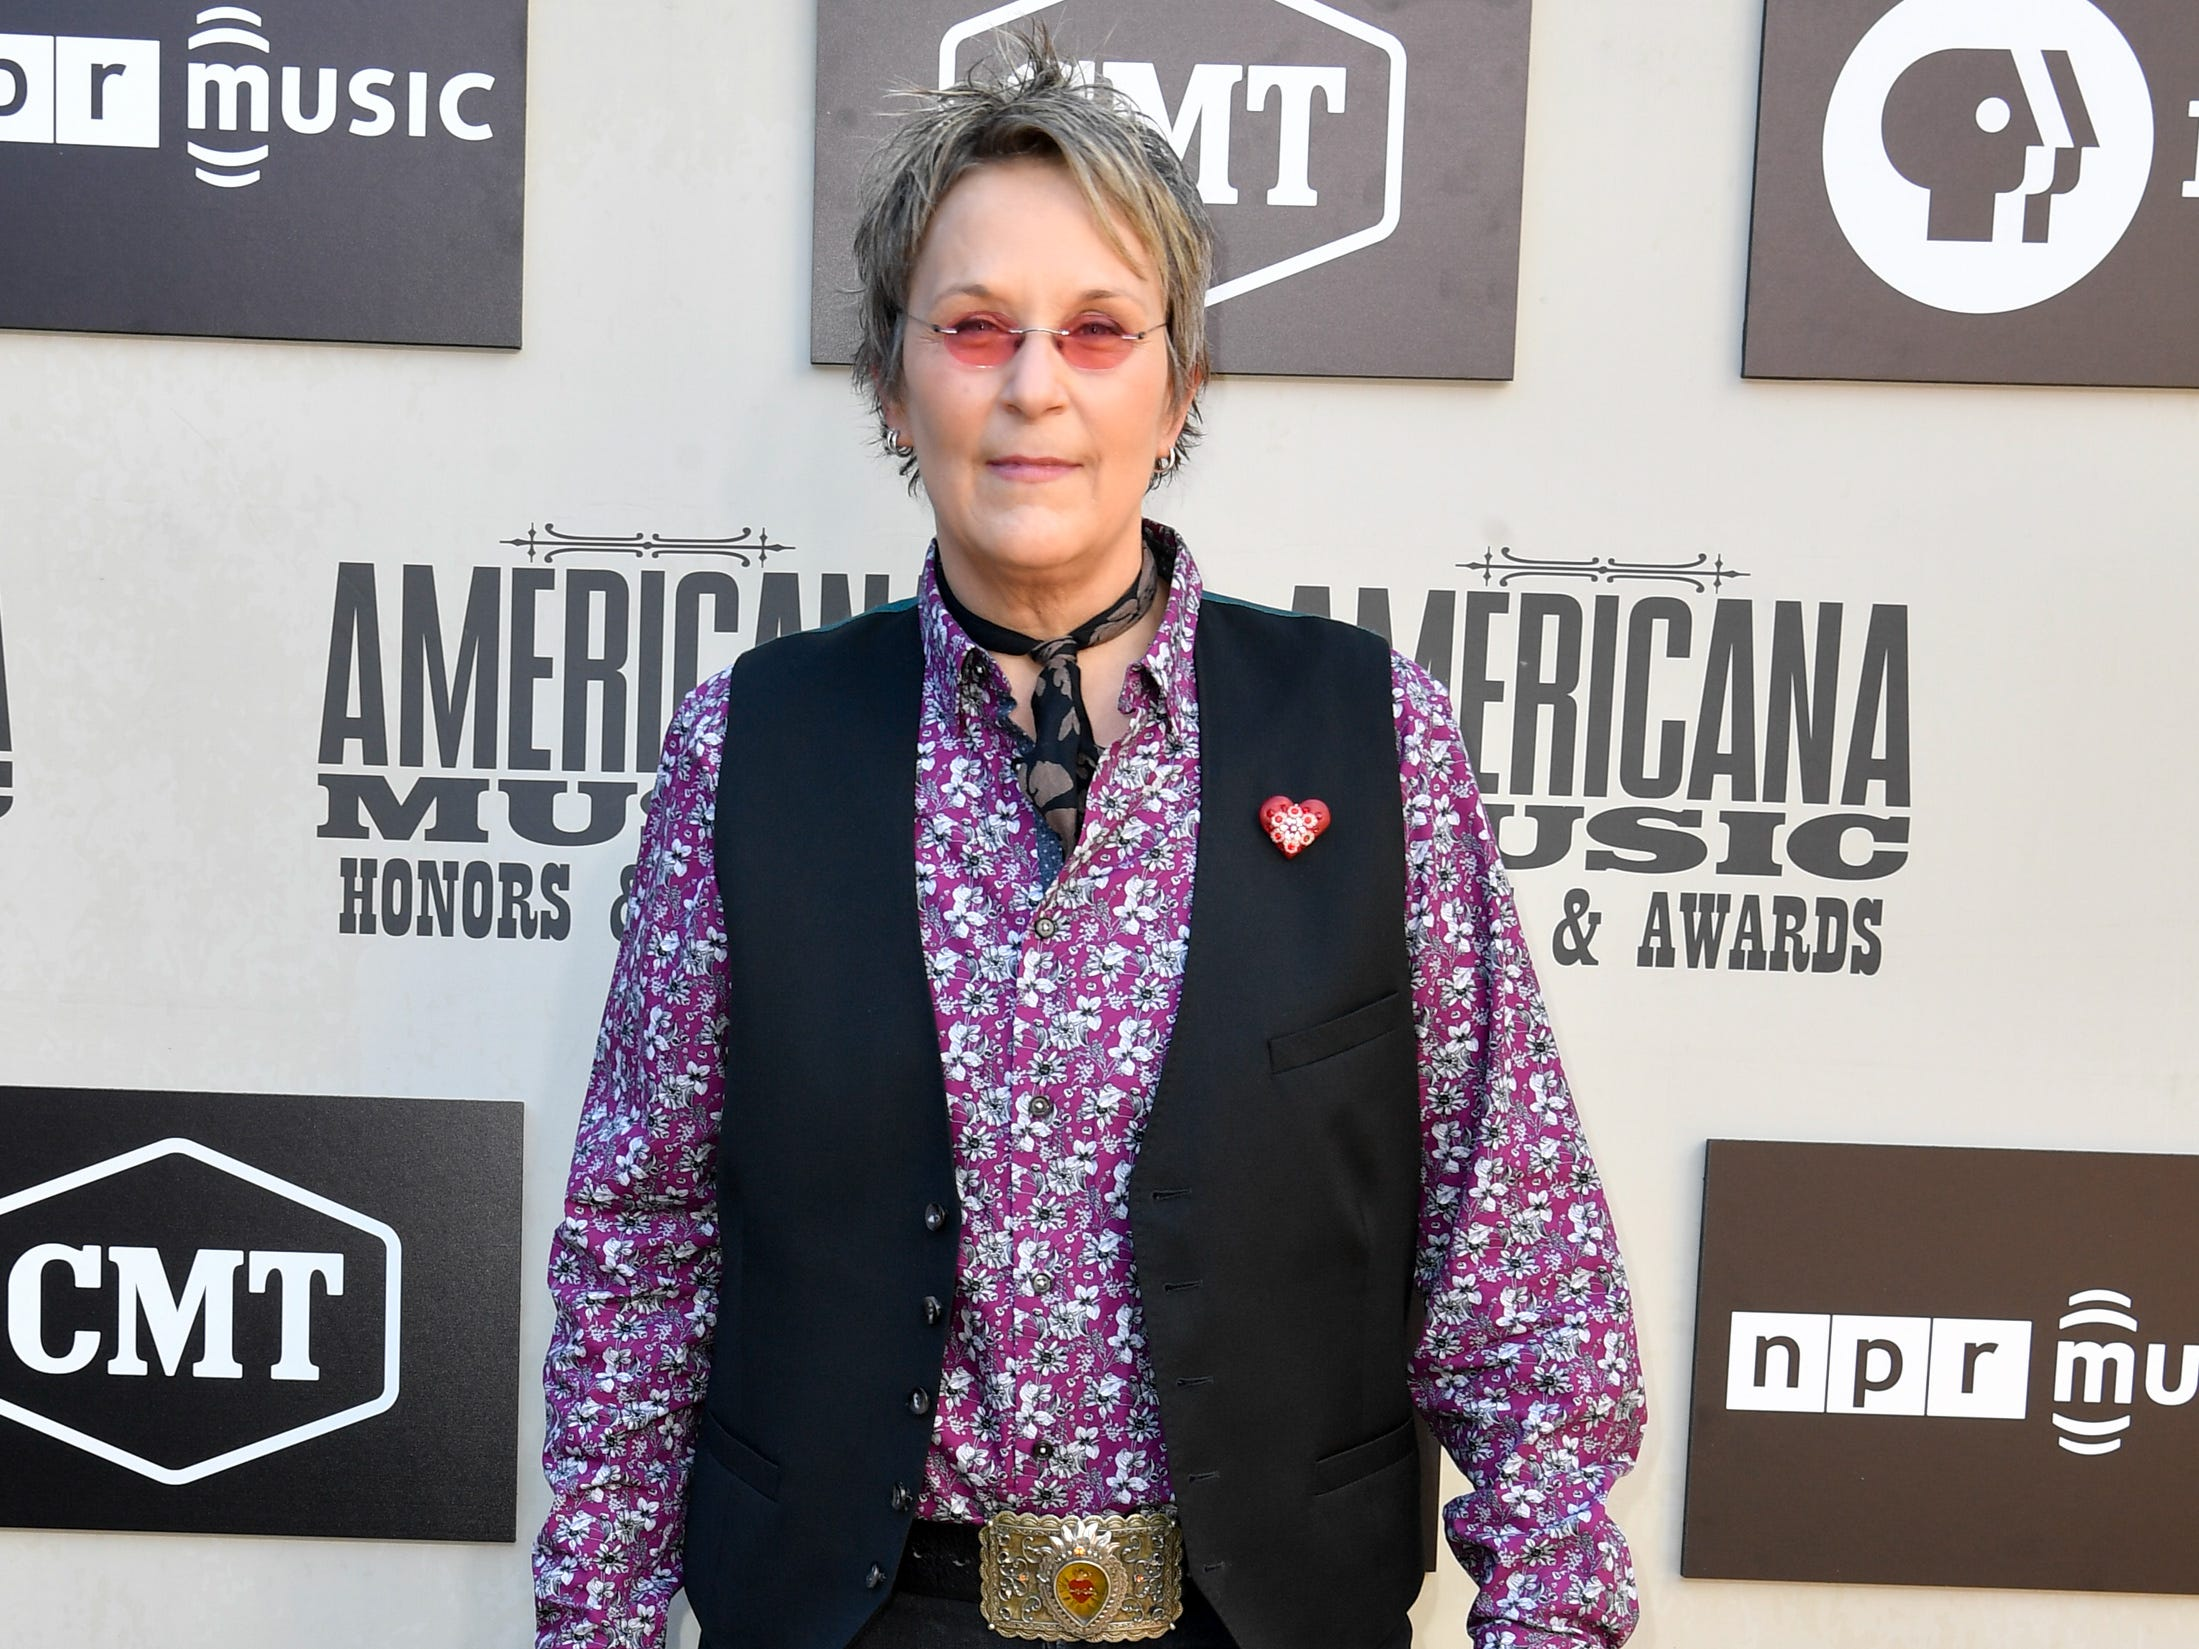 Mary Gauthier poses on the red carpet before the 2018 Americana Honors and Awards show at the Ryman Auditorium in Nashville, Tenn., Wednesday, Sept. 12, 2018.